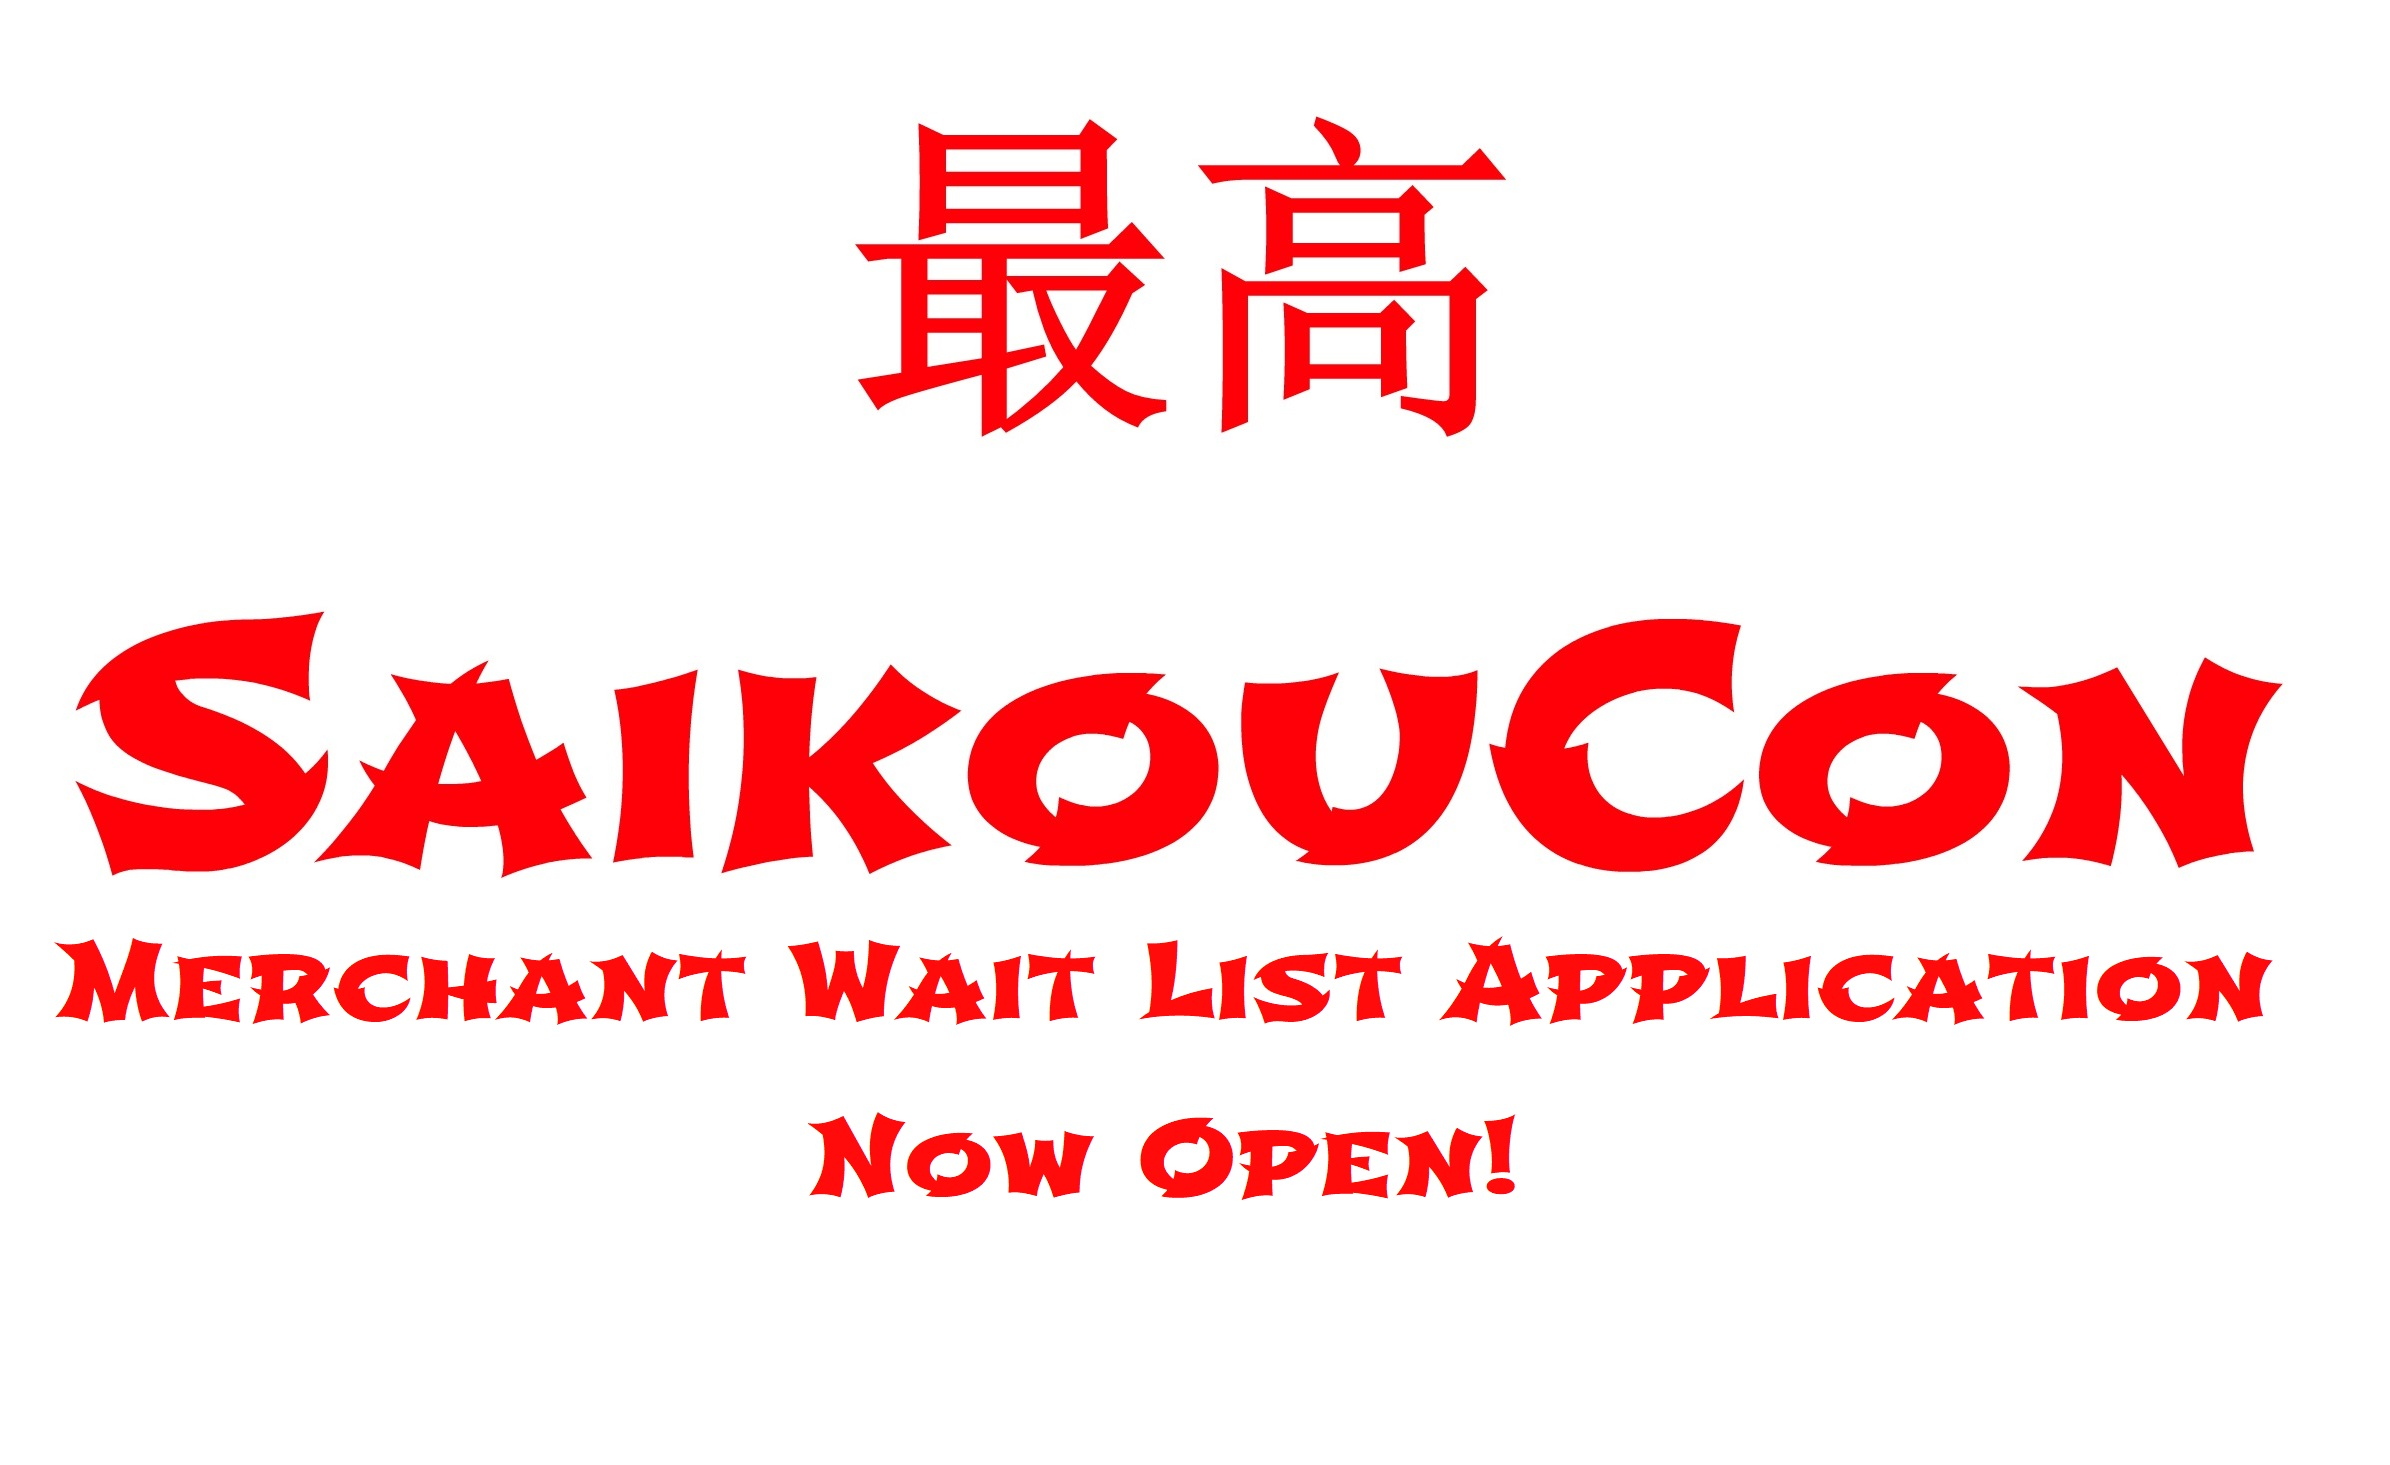 SaikouCon Merchant Wait List Application Now Open